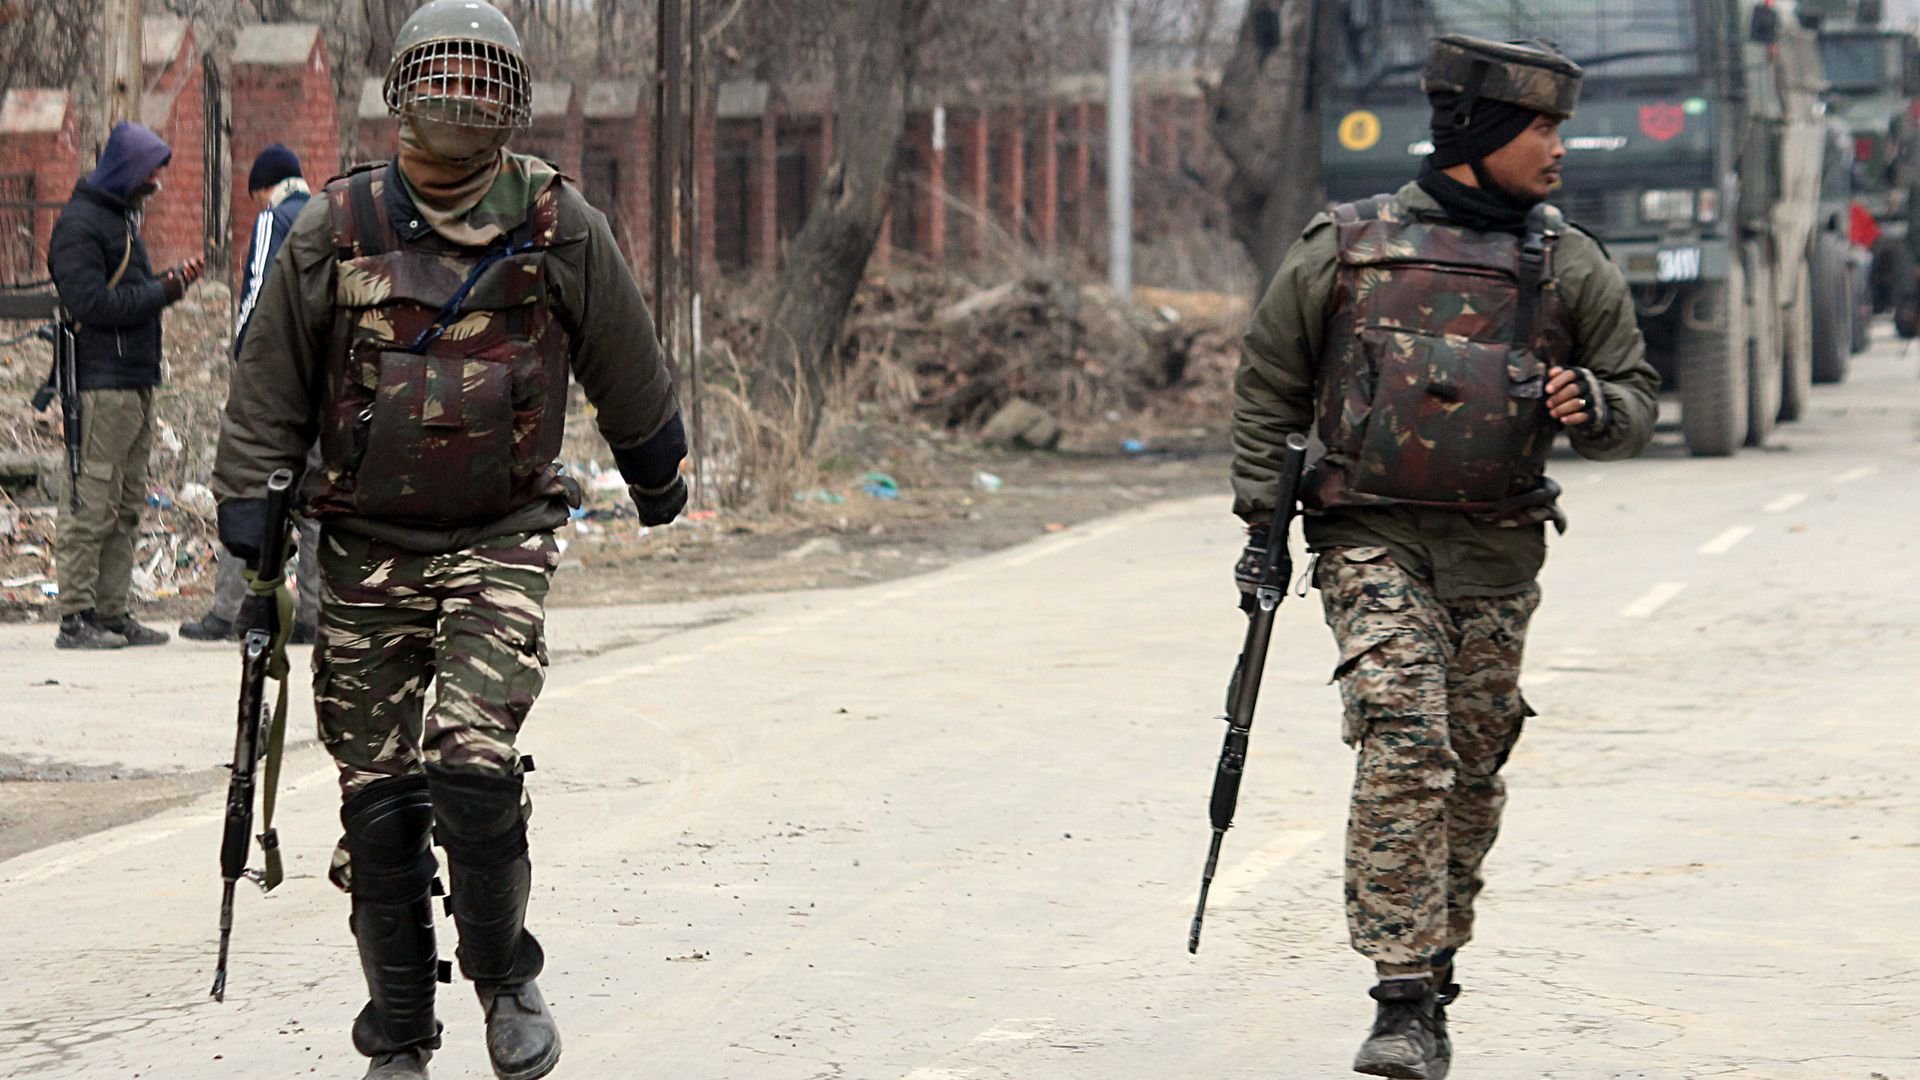 India said it launched air strikes on a suspected terrorist training camp inside Pakistan.